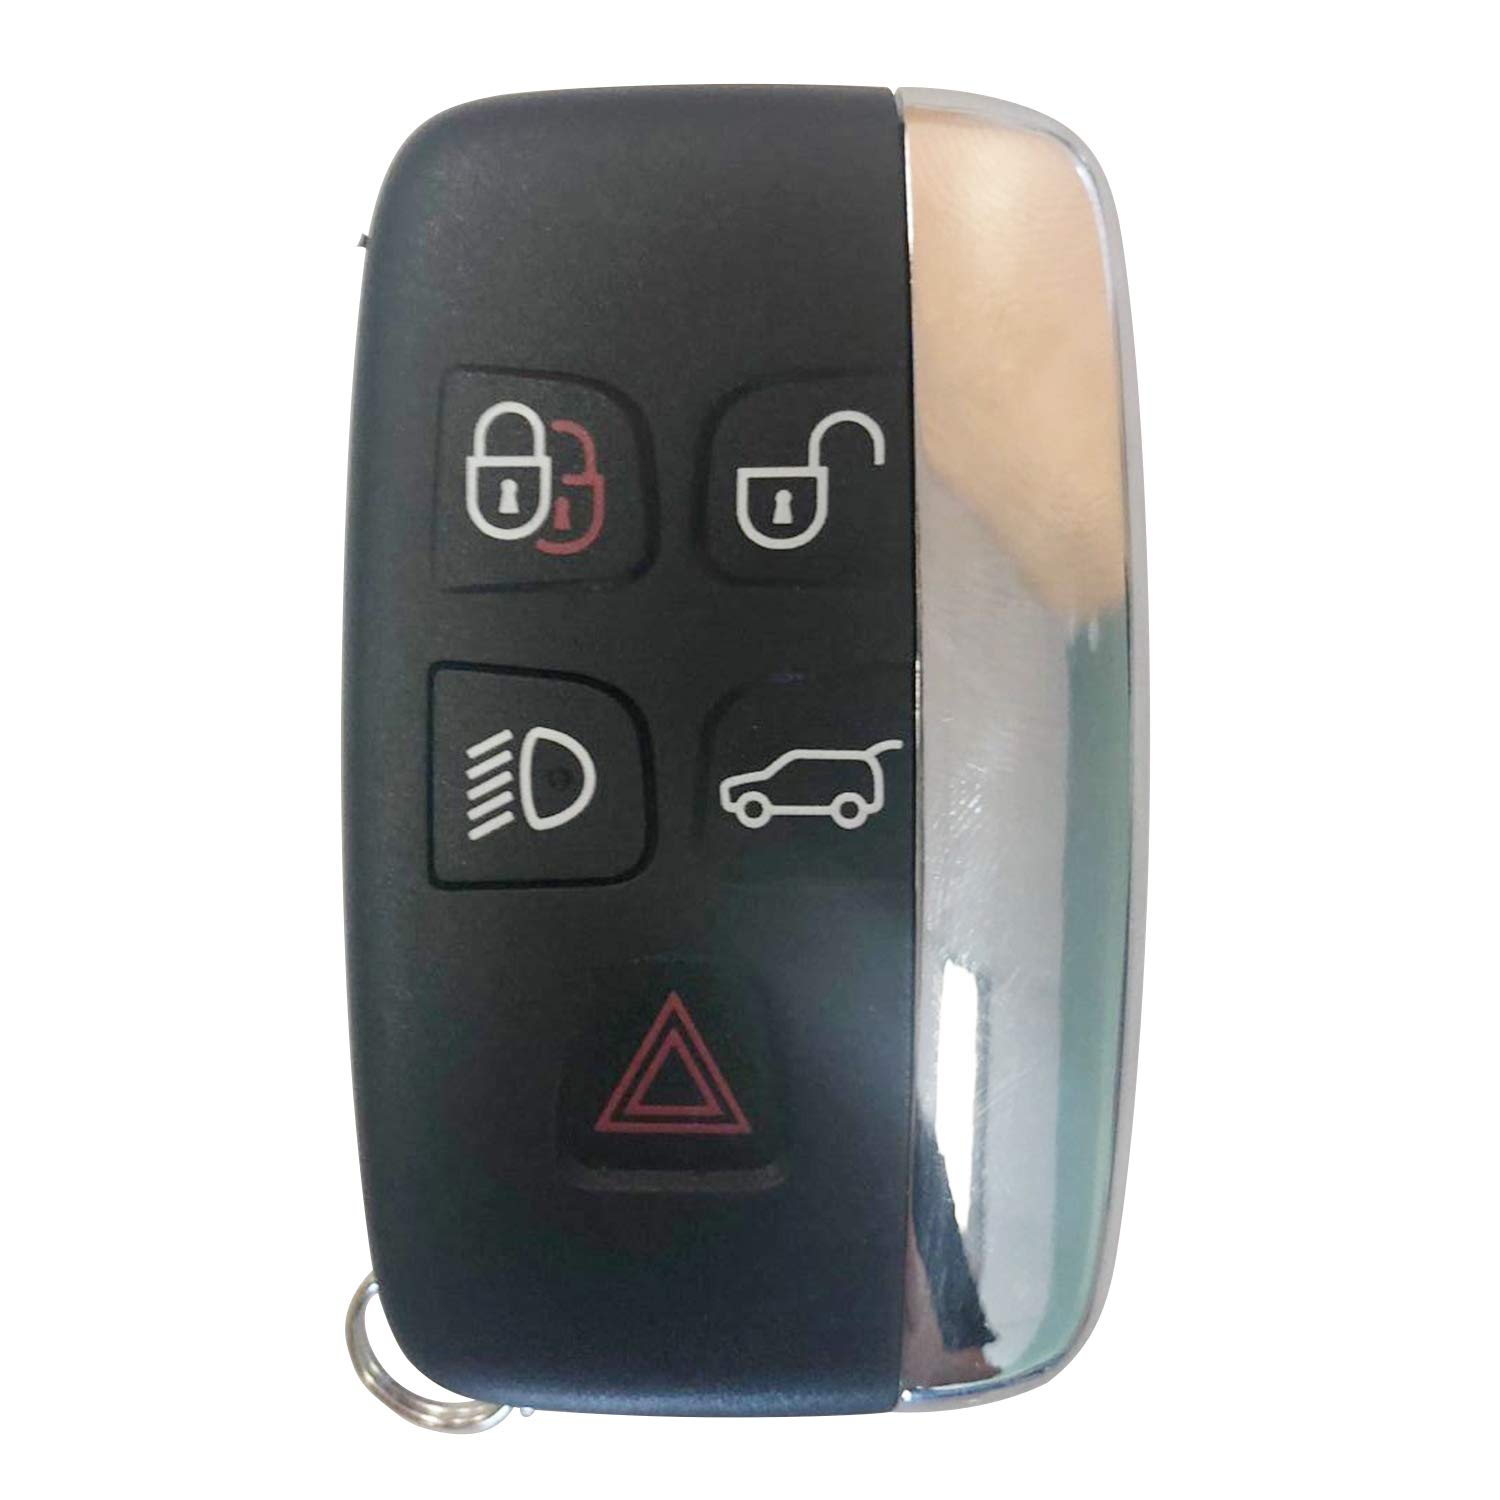 NEW Replacement for Land Rover 2012-2017 Range Rover Evoque Sport Remote  Key Fob 5 Btn 315MHz FCCID:KOBJTF10A,by AUTOKEYMAX (SINGLE)